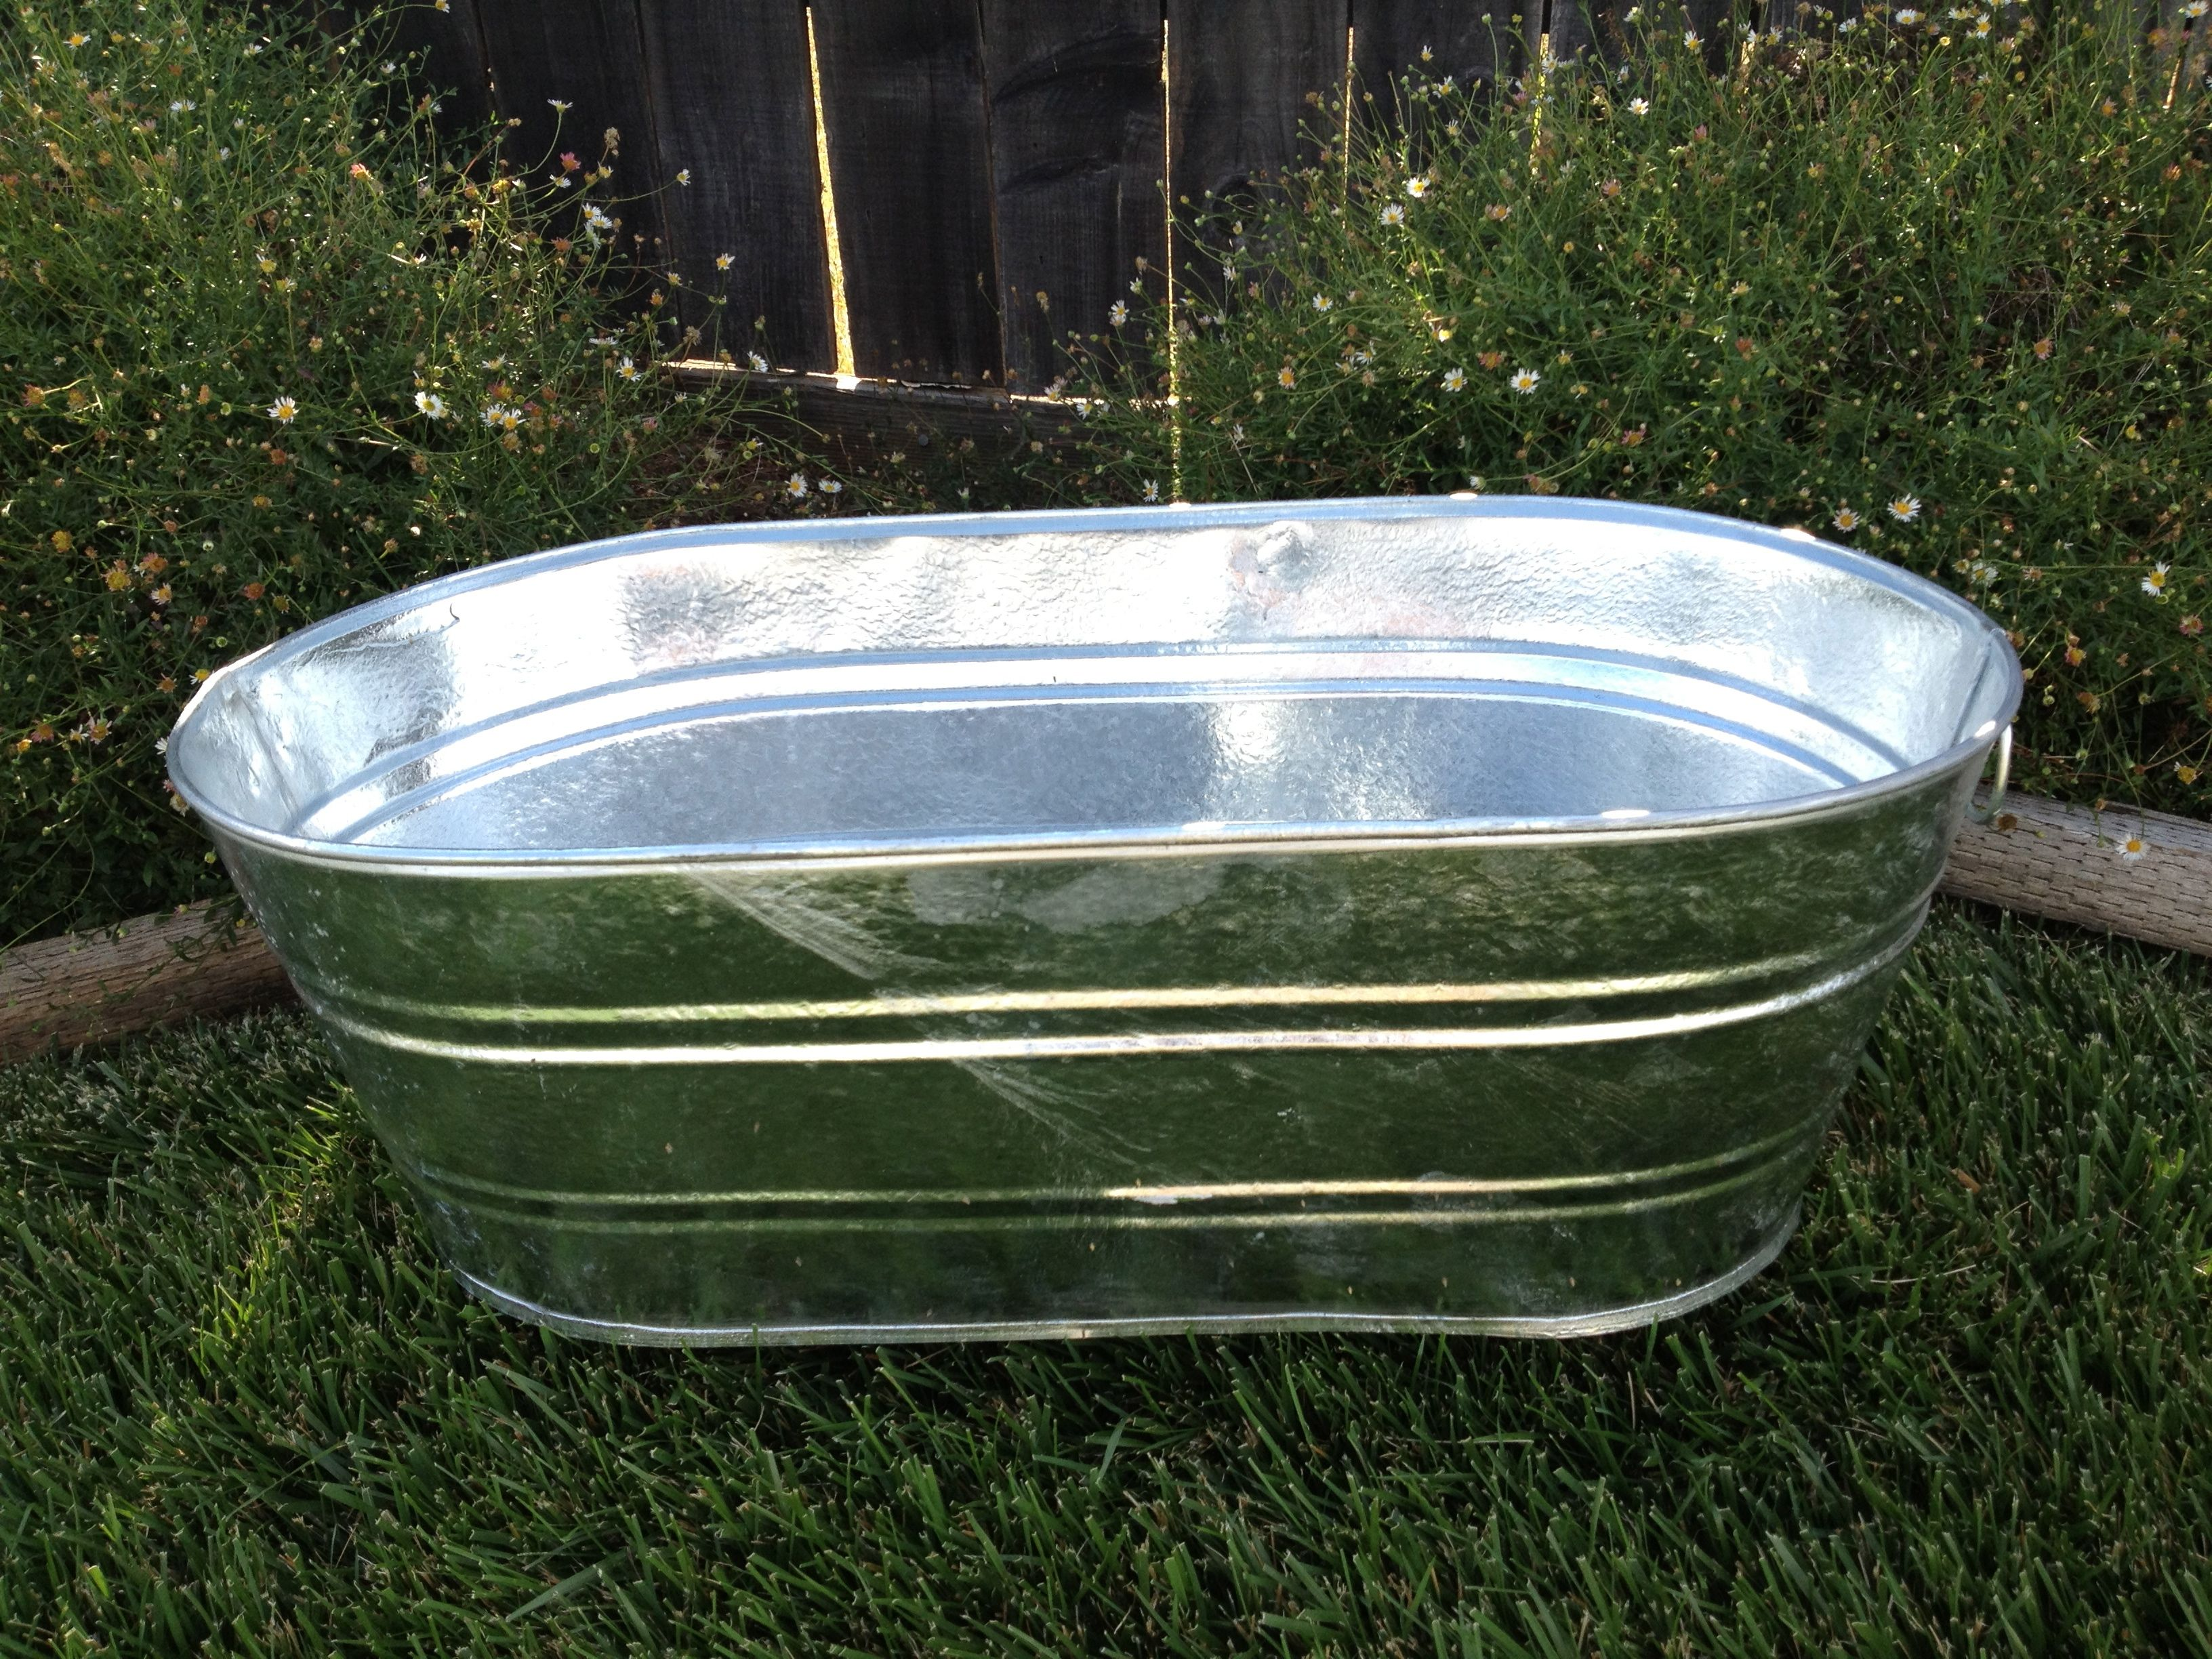 50 Gallon Galvanized Tub Galvanized Tub Bathrooms